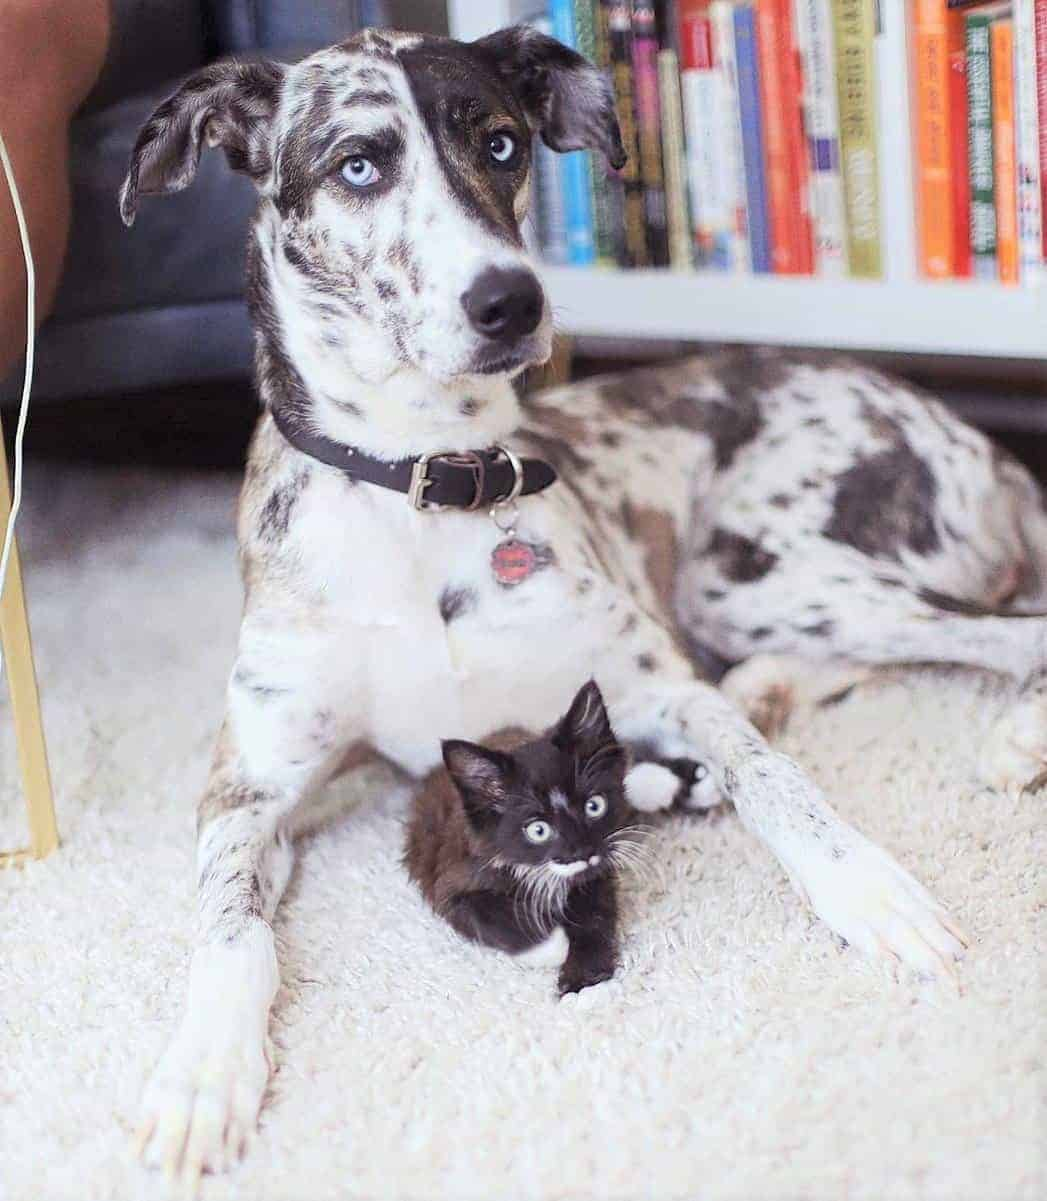 Husky and Great Dane mix with a cute kitten